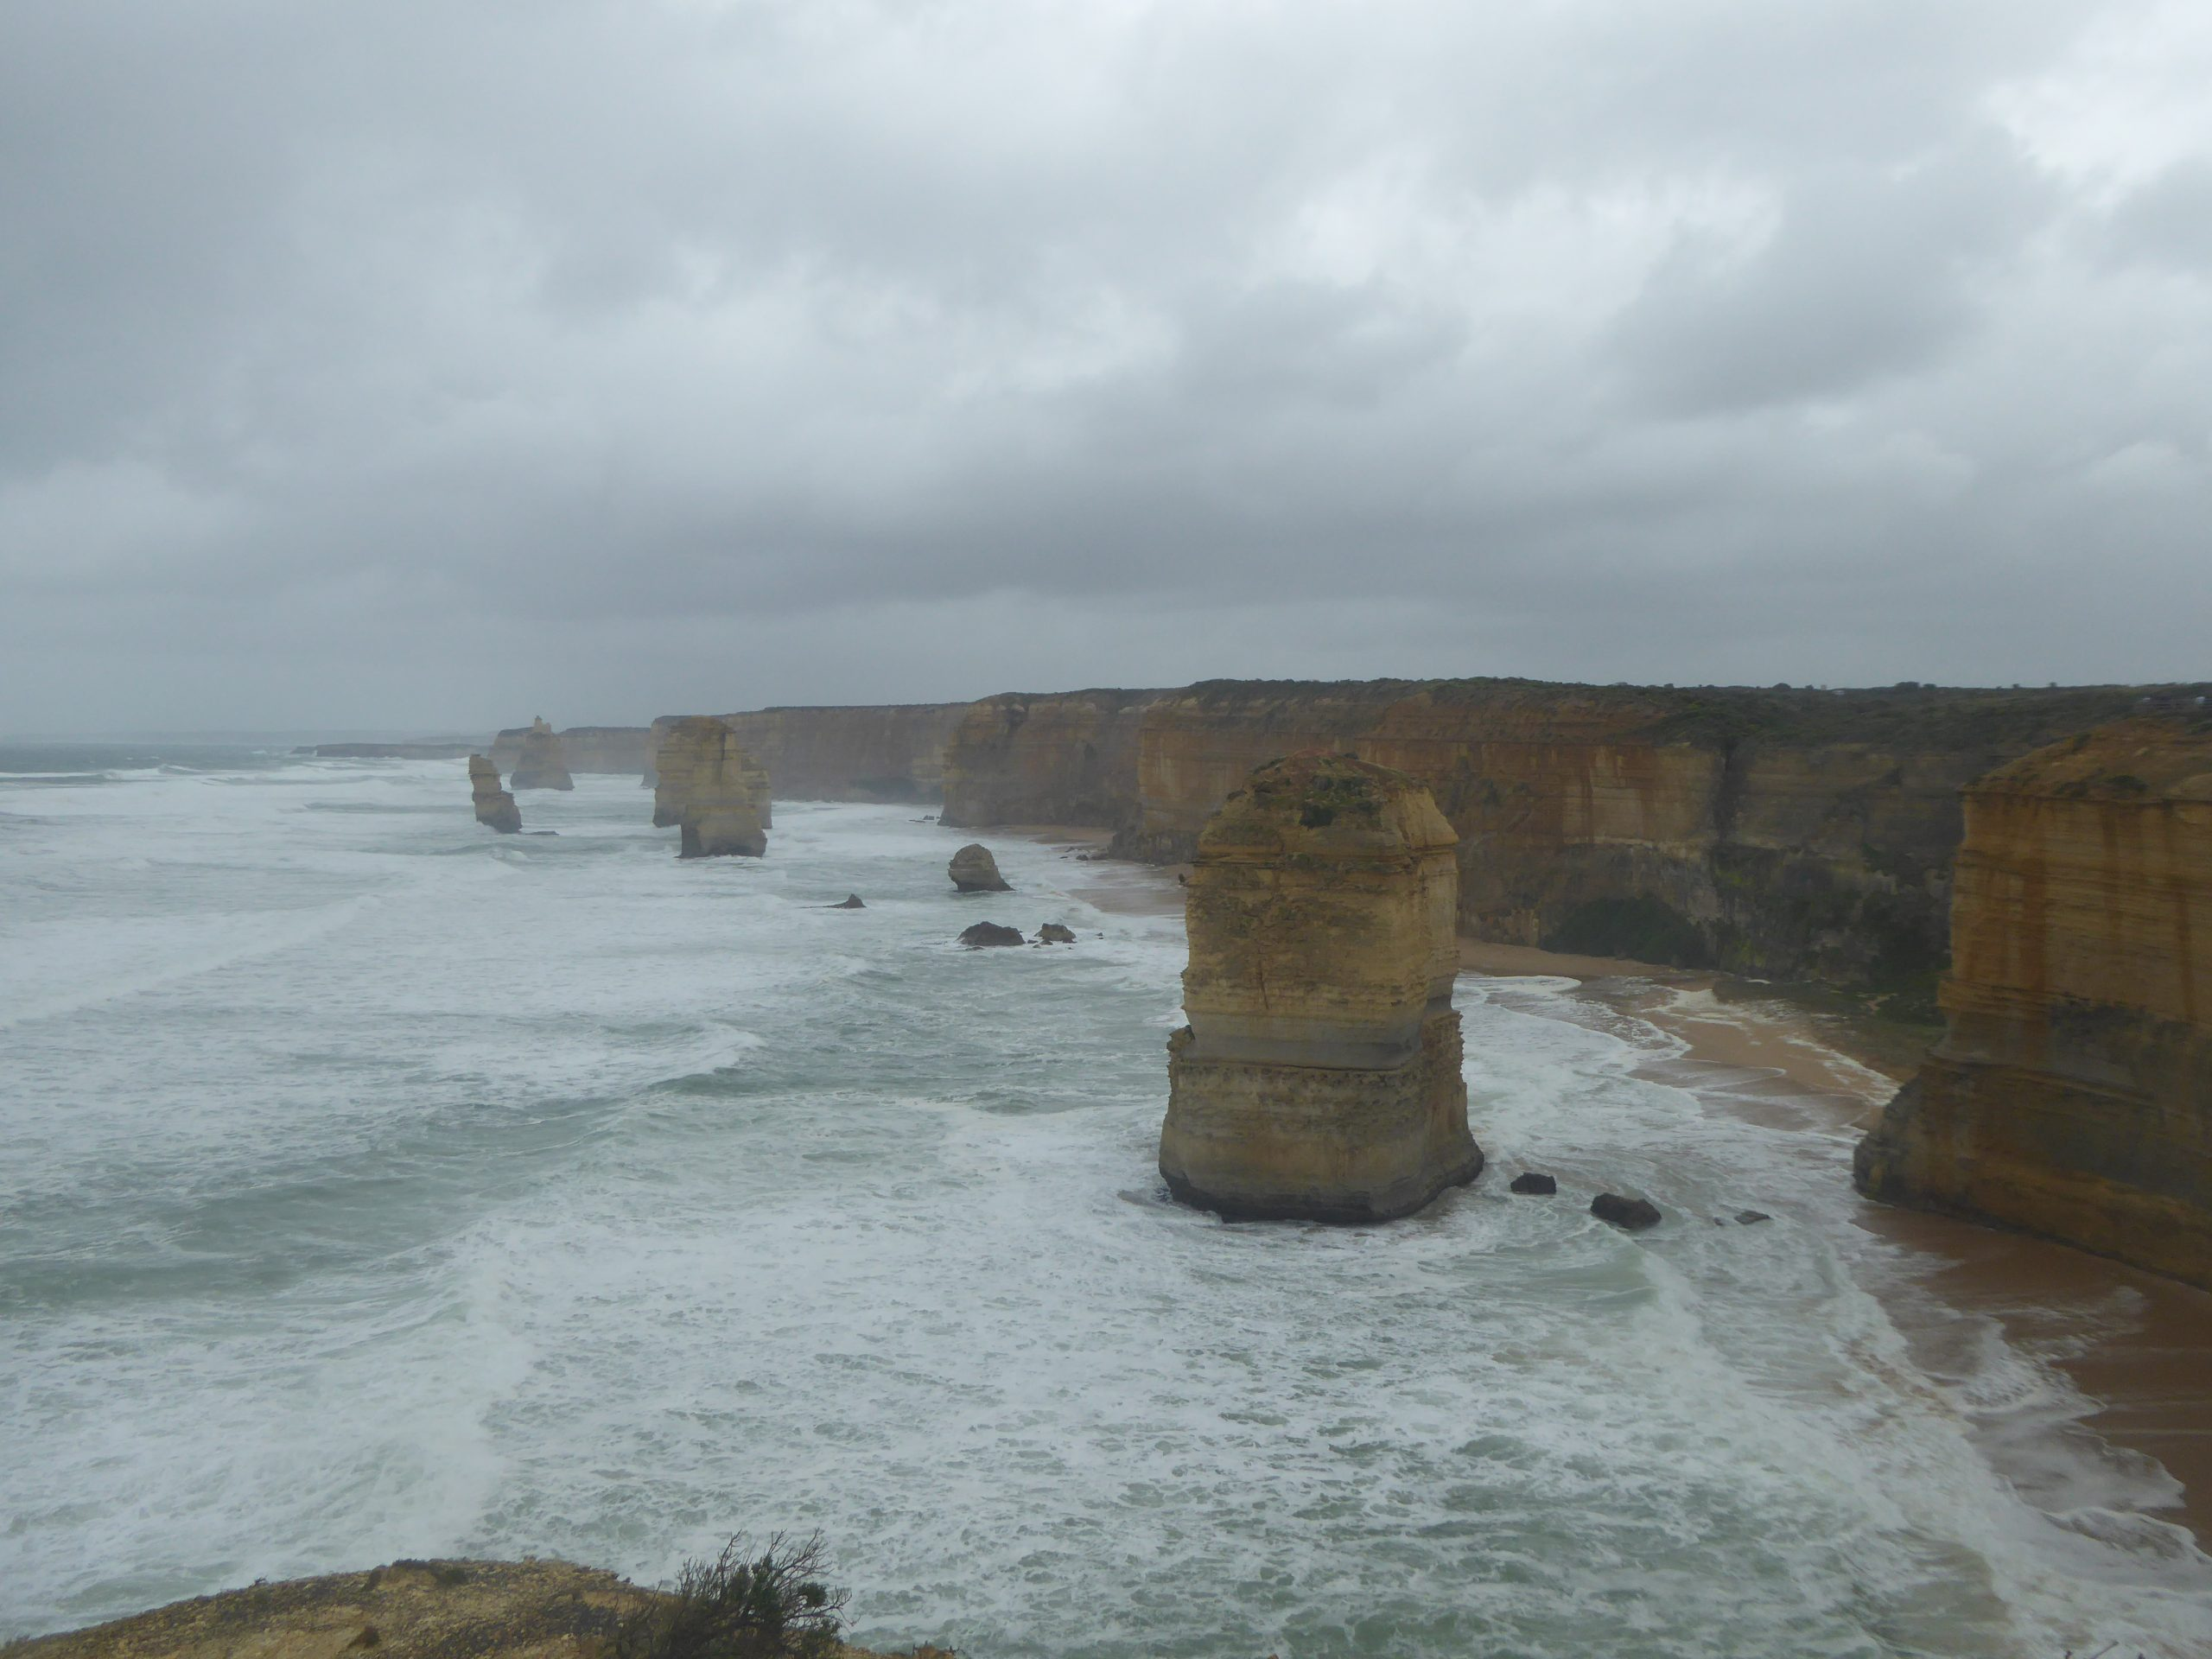 Radreise Australien 2016 - Great Ocean Road - The Twelve Apostles